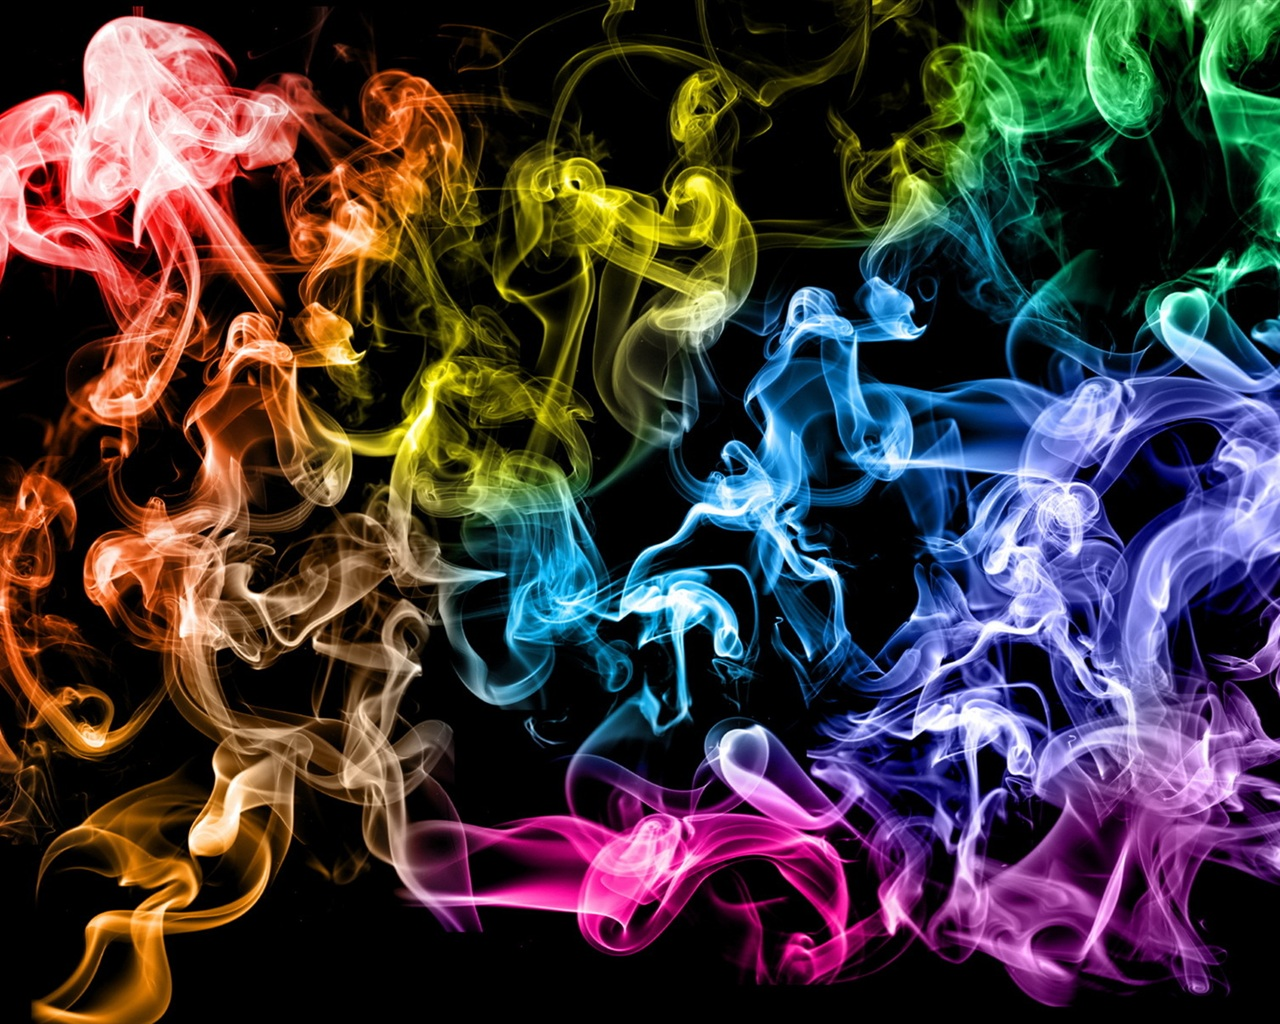 Colored smoke rings wallpaper - 1280x1024